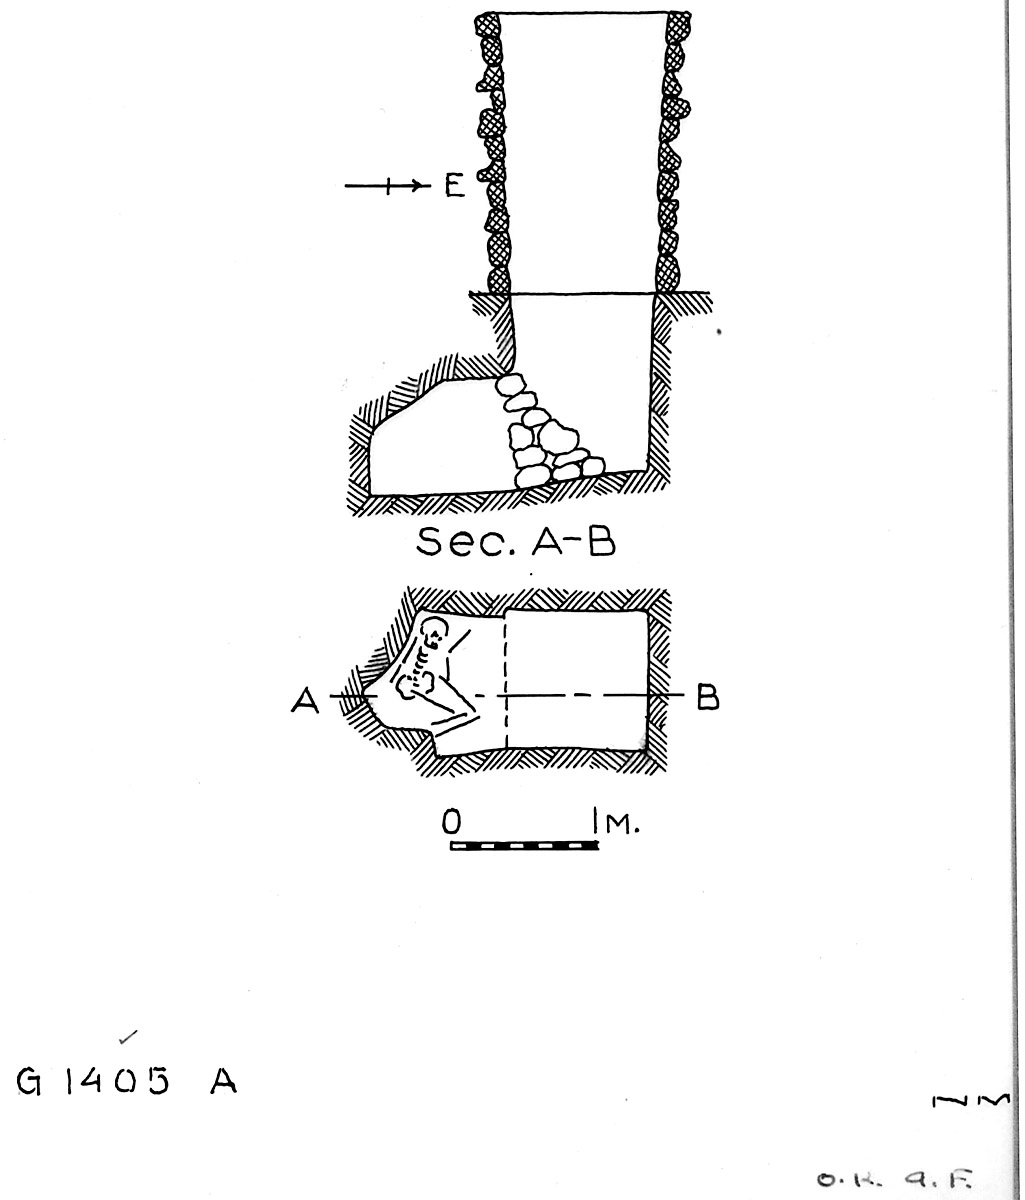 Maps and plans: G 1405, Shaft A